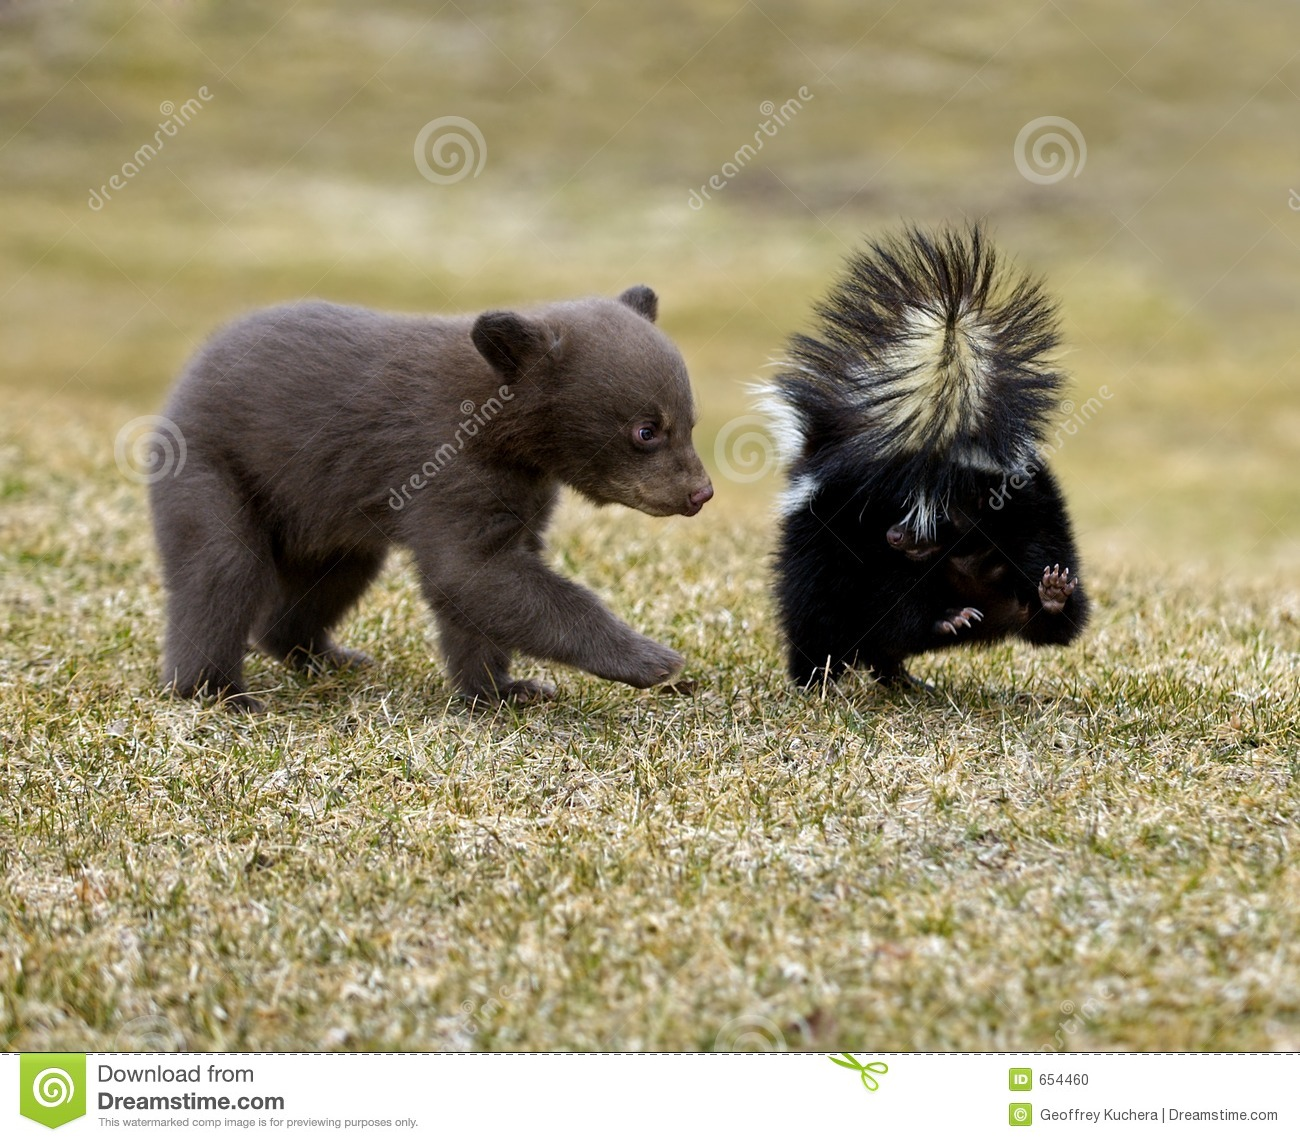 Download Curious Black Bear (Ursus Americanus) And Striped Skunk Stock Photo - Image of wildlife, americanus: 654460